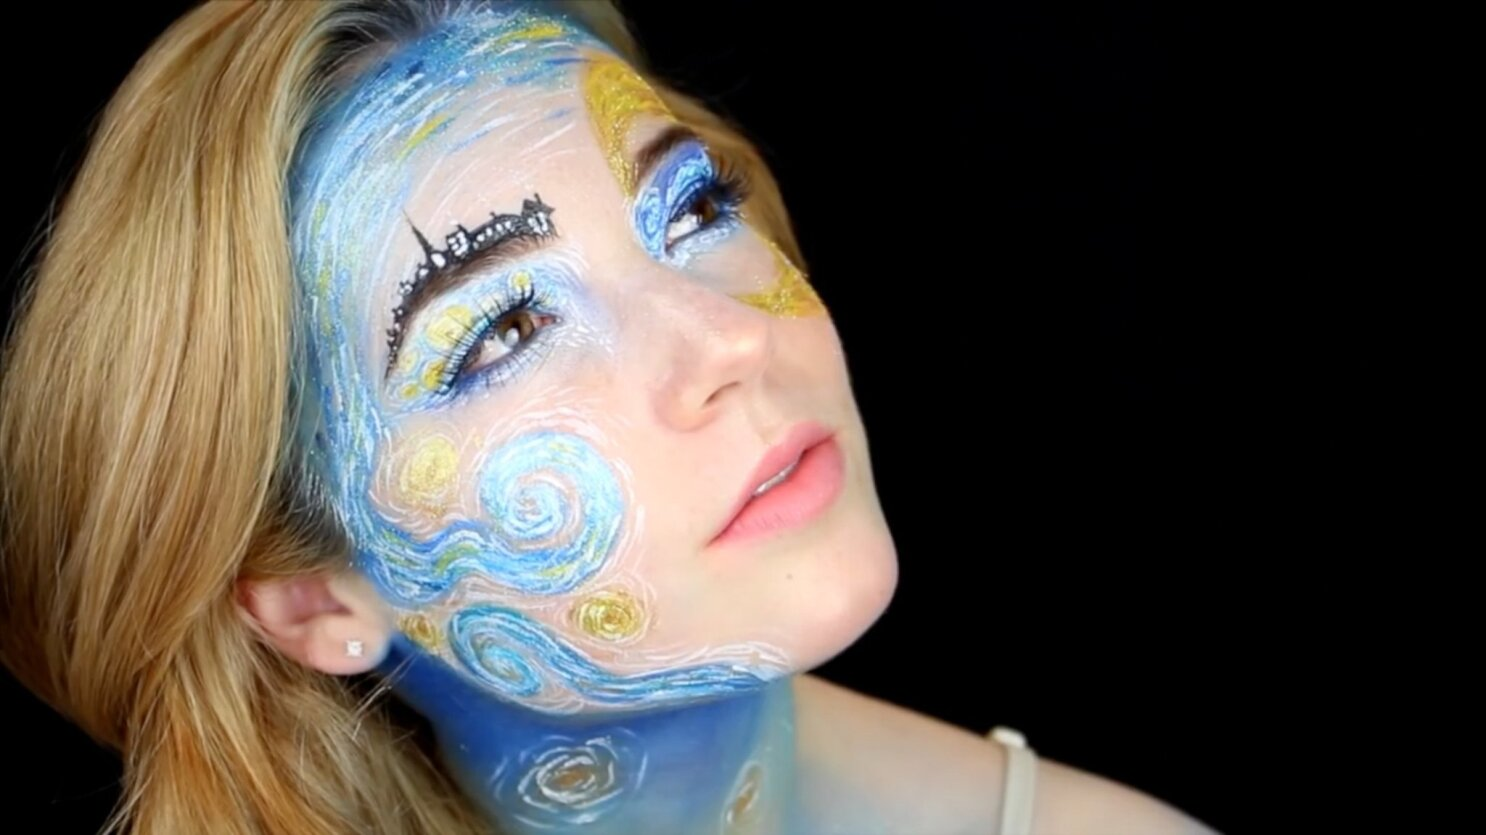 Teen makes U S  finals for makeup design conteset - The San Diego